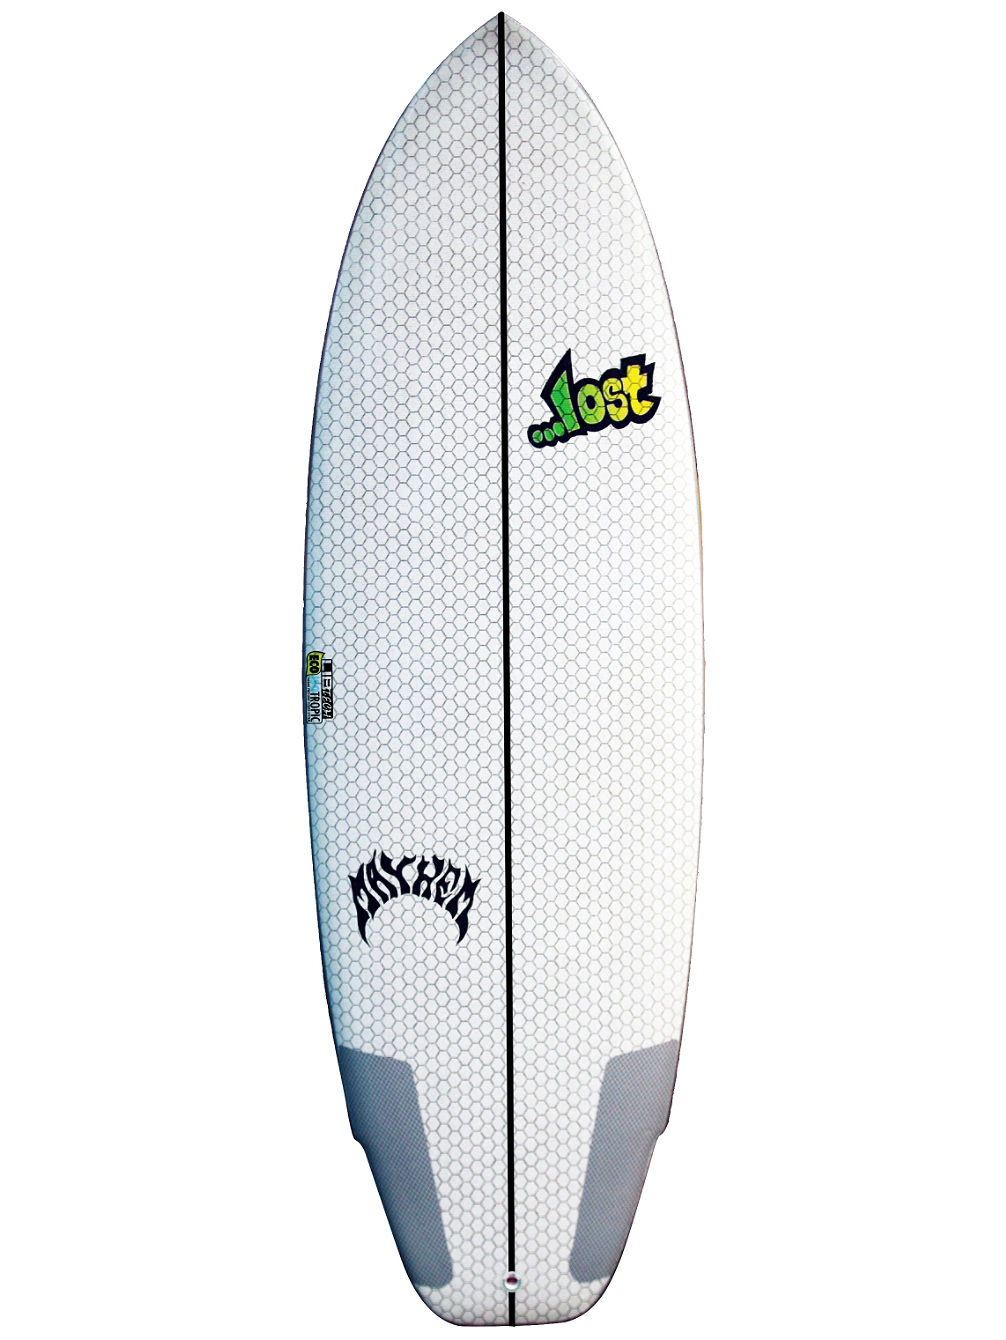 X Lost Puddle Jumper 5.7 Surfboard